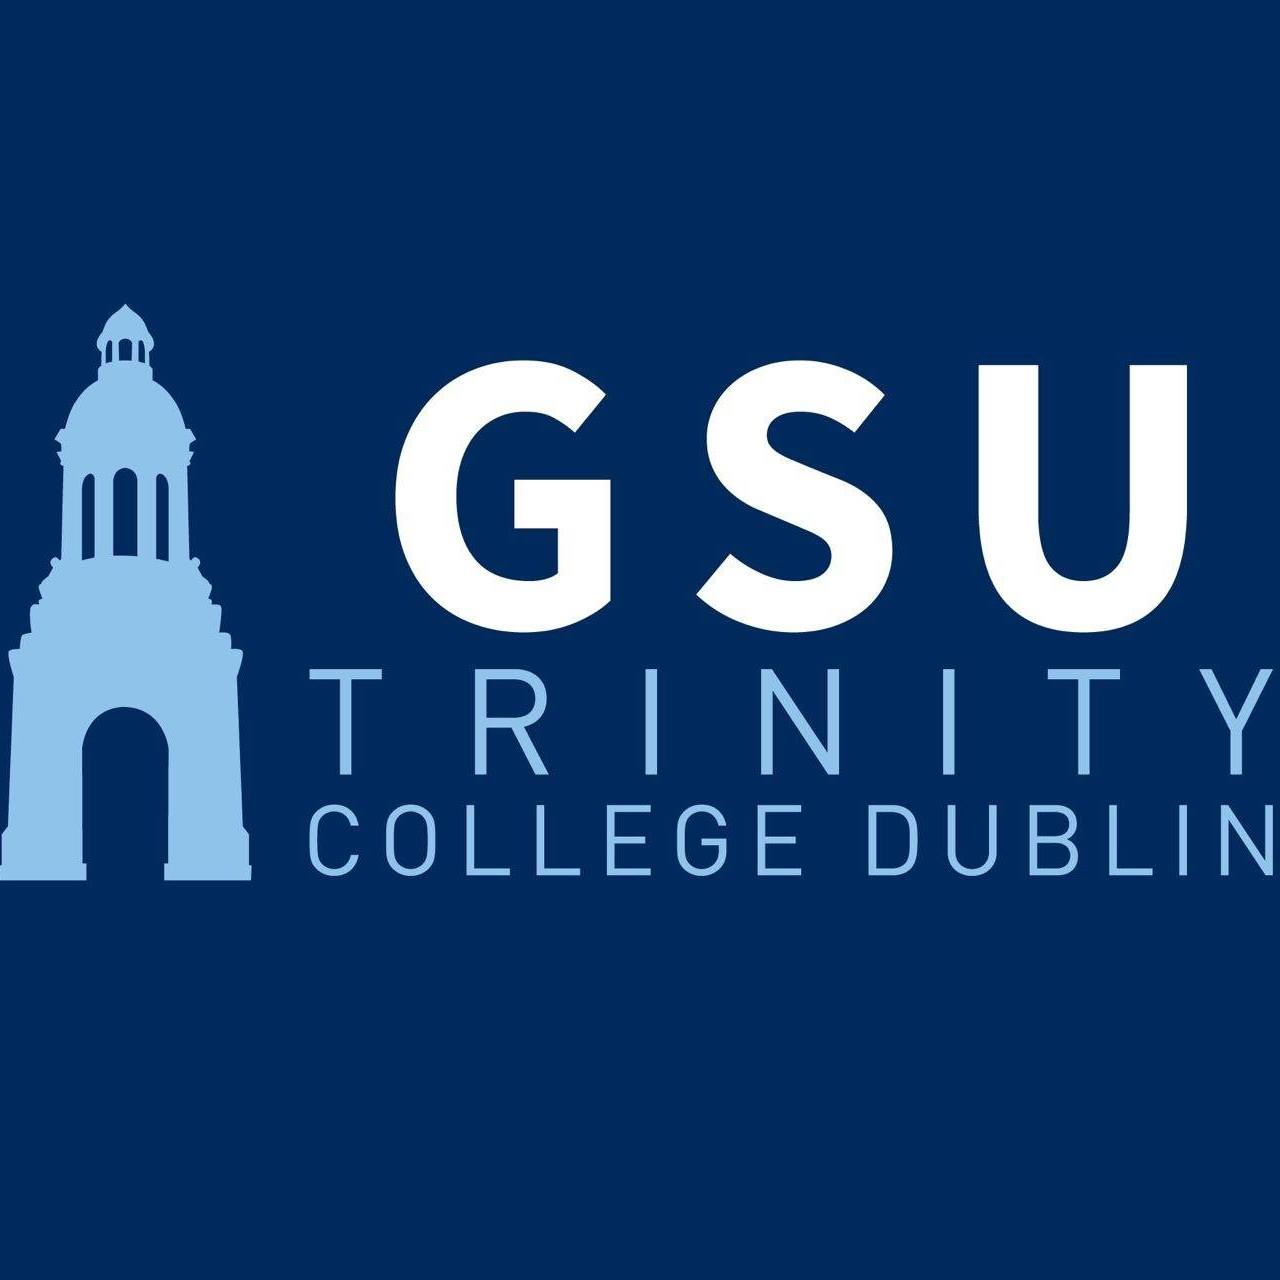 Graduate Students' Union - Trinity College Dublin